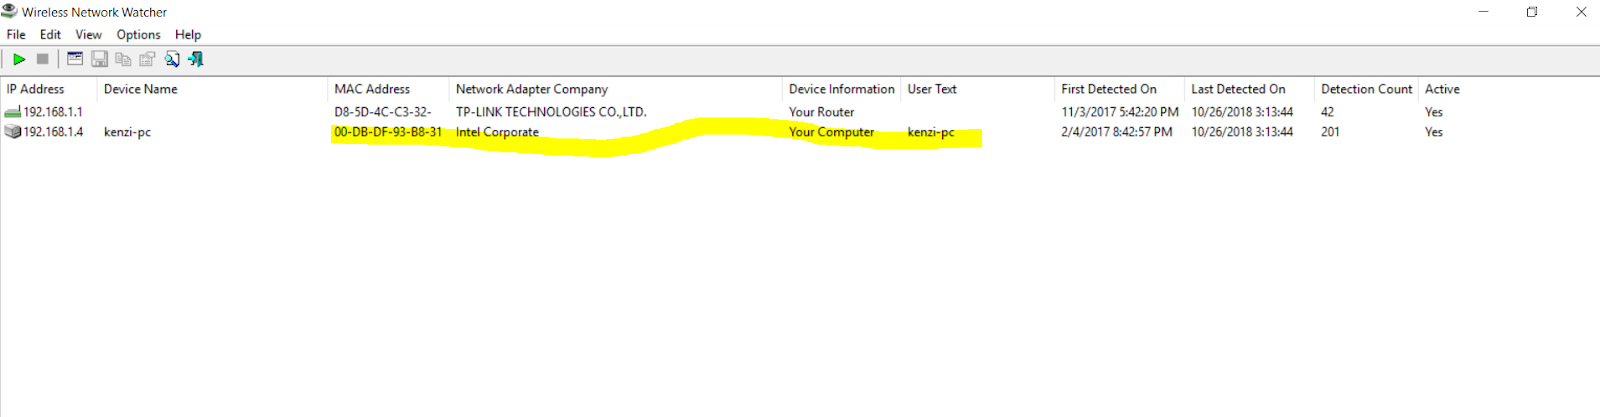 How-to-kick-off-any-devices-from-your-Wi-Fi-in-windows-pc